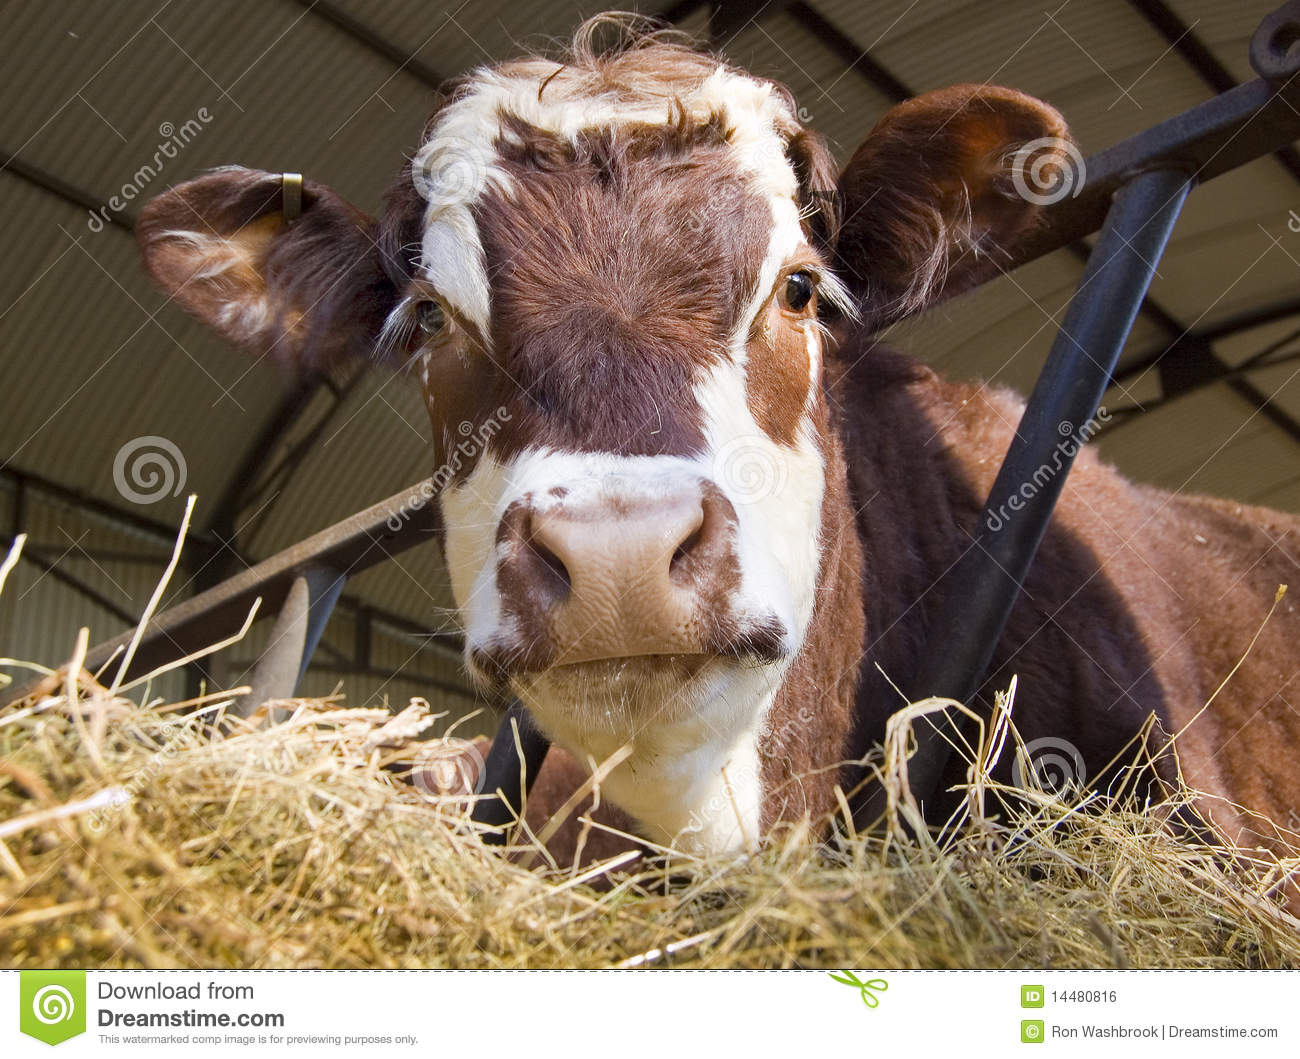 Cow In Shed Royalty Free Stock Image Image 14480816